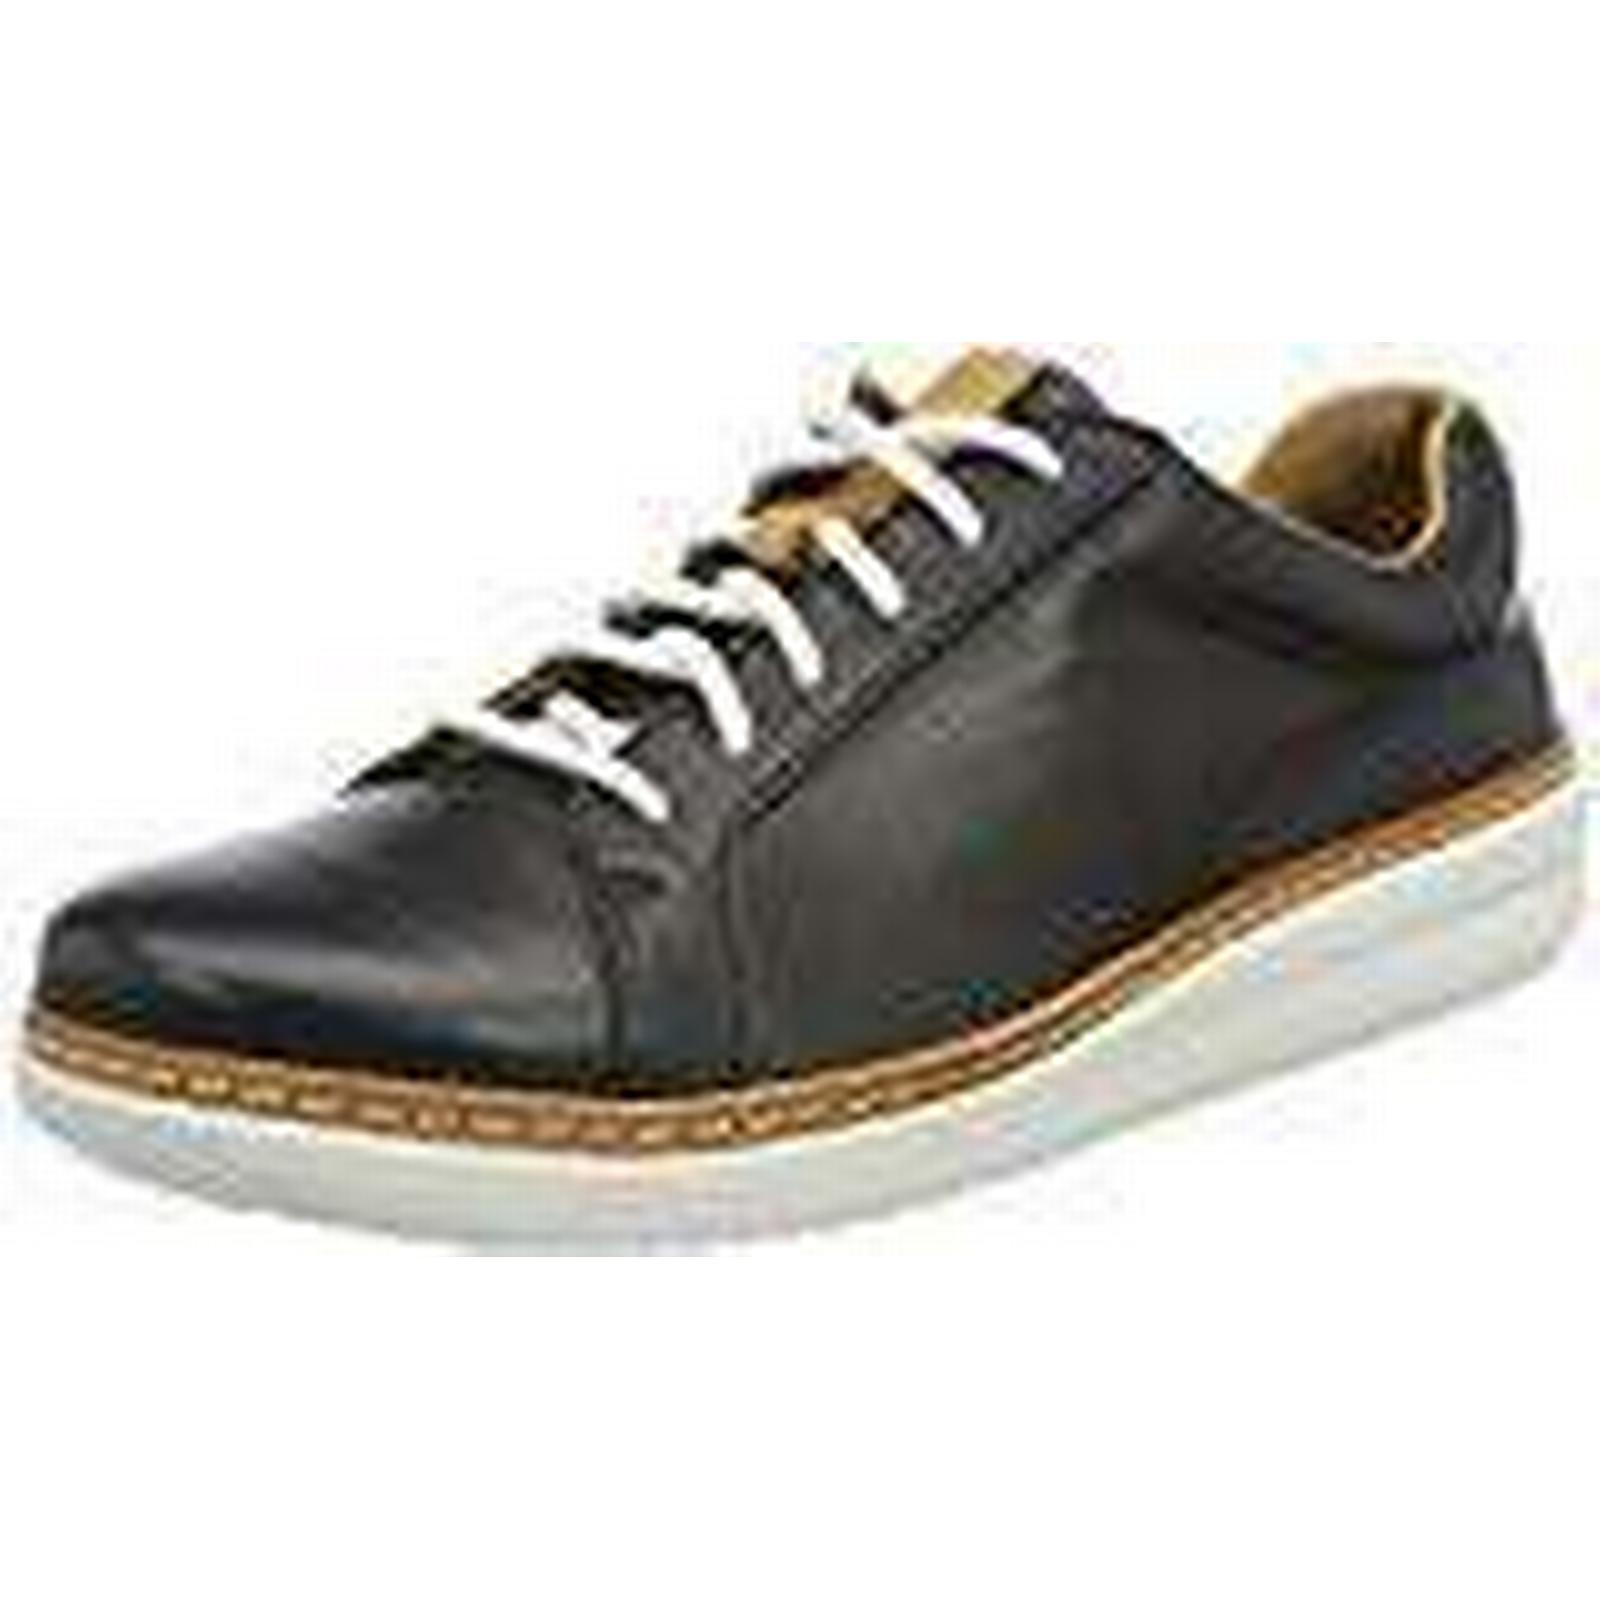 Clarks Women''s Amberlee Leather), Rosa Low-Top Sneakers, (Black Leather), Amberlee 6 UK 1b0346